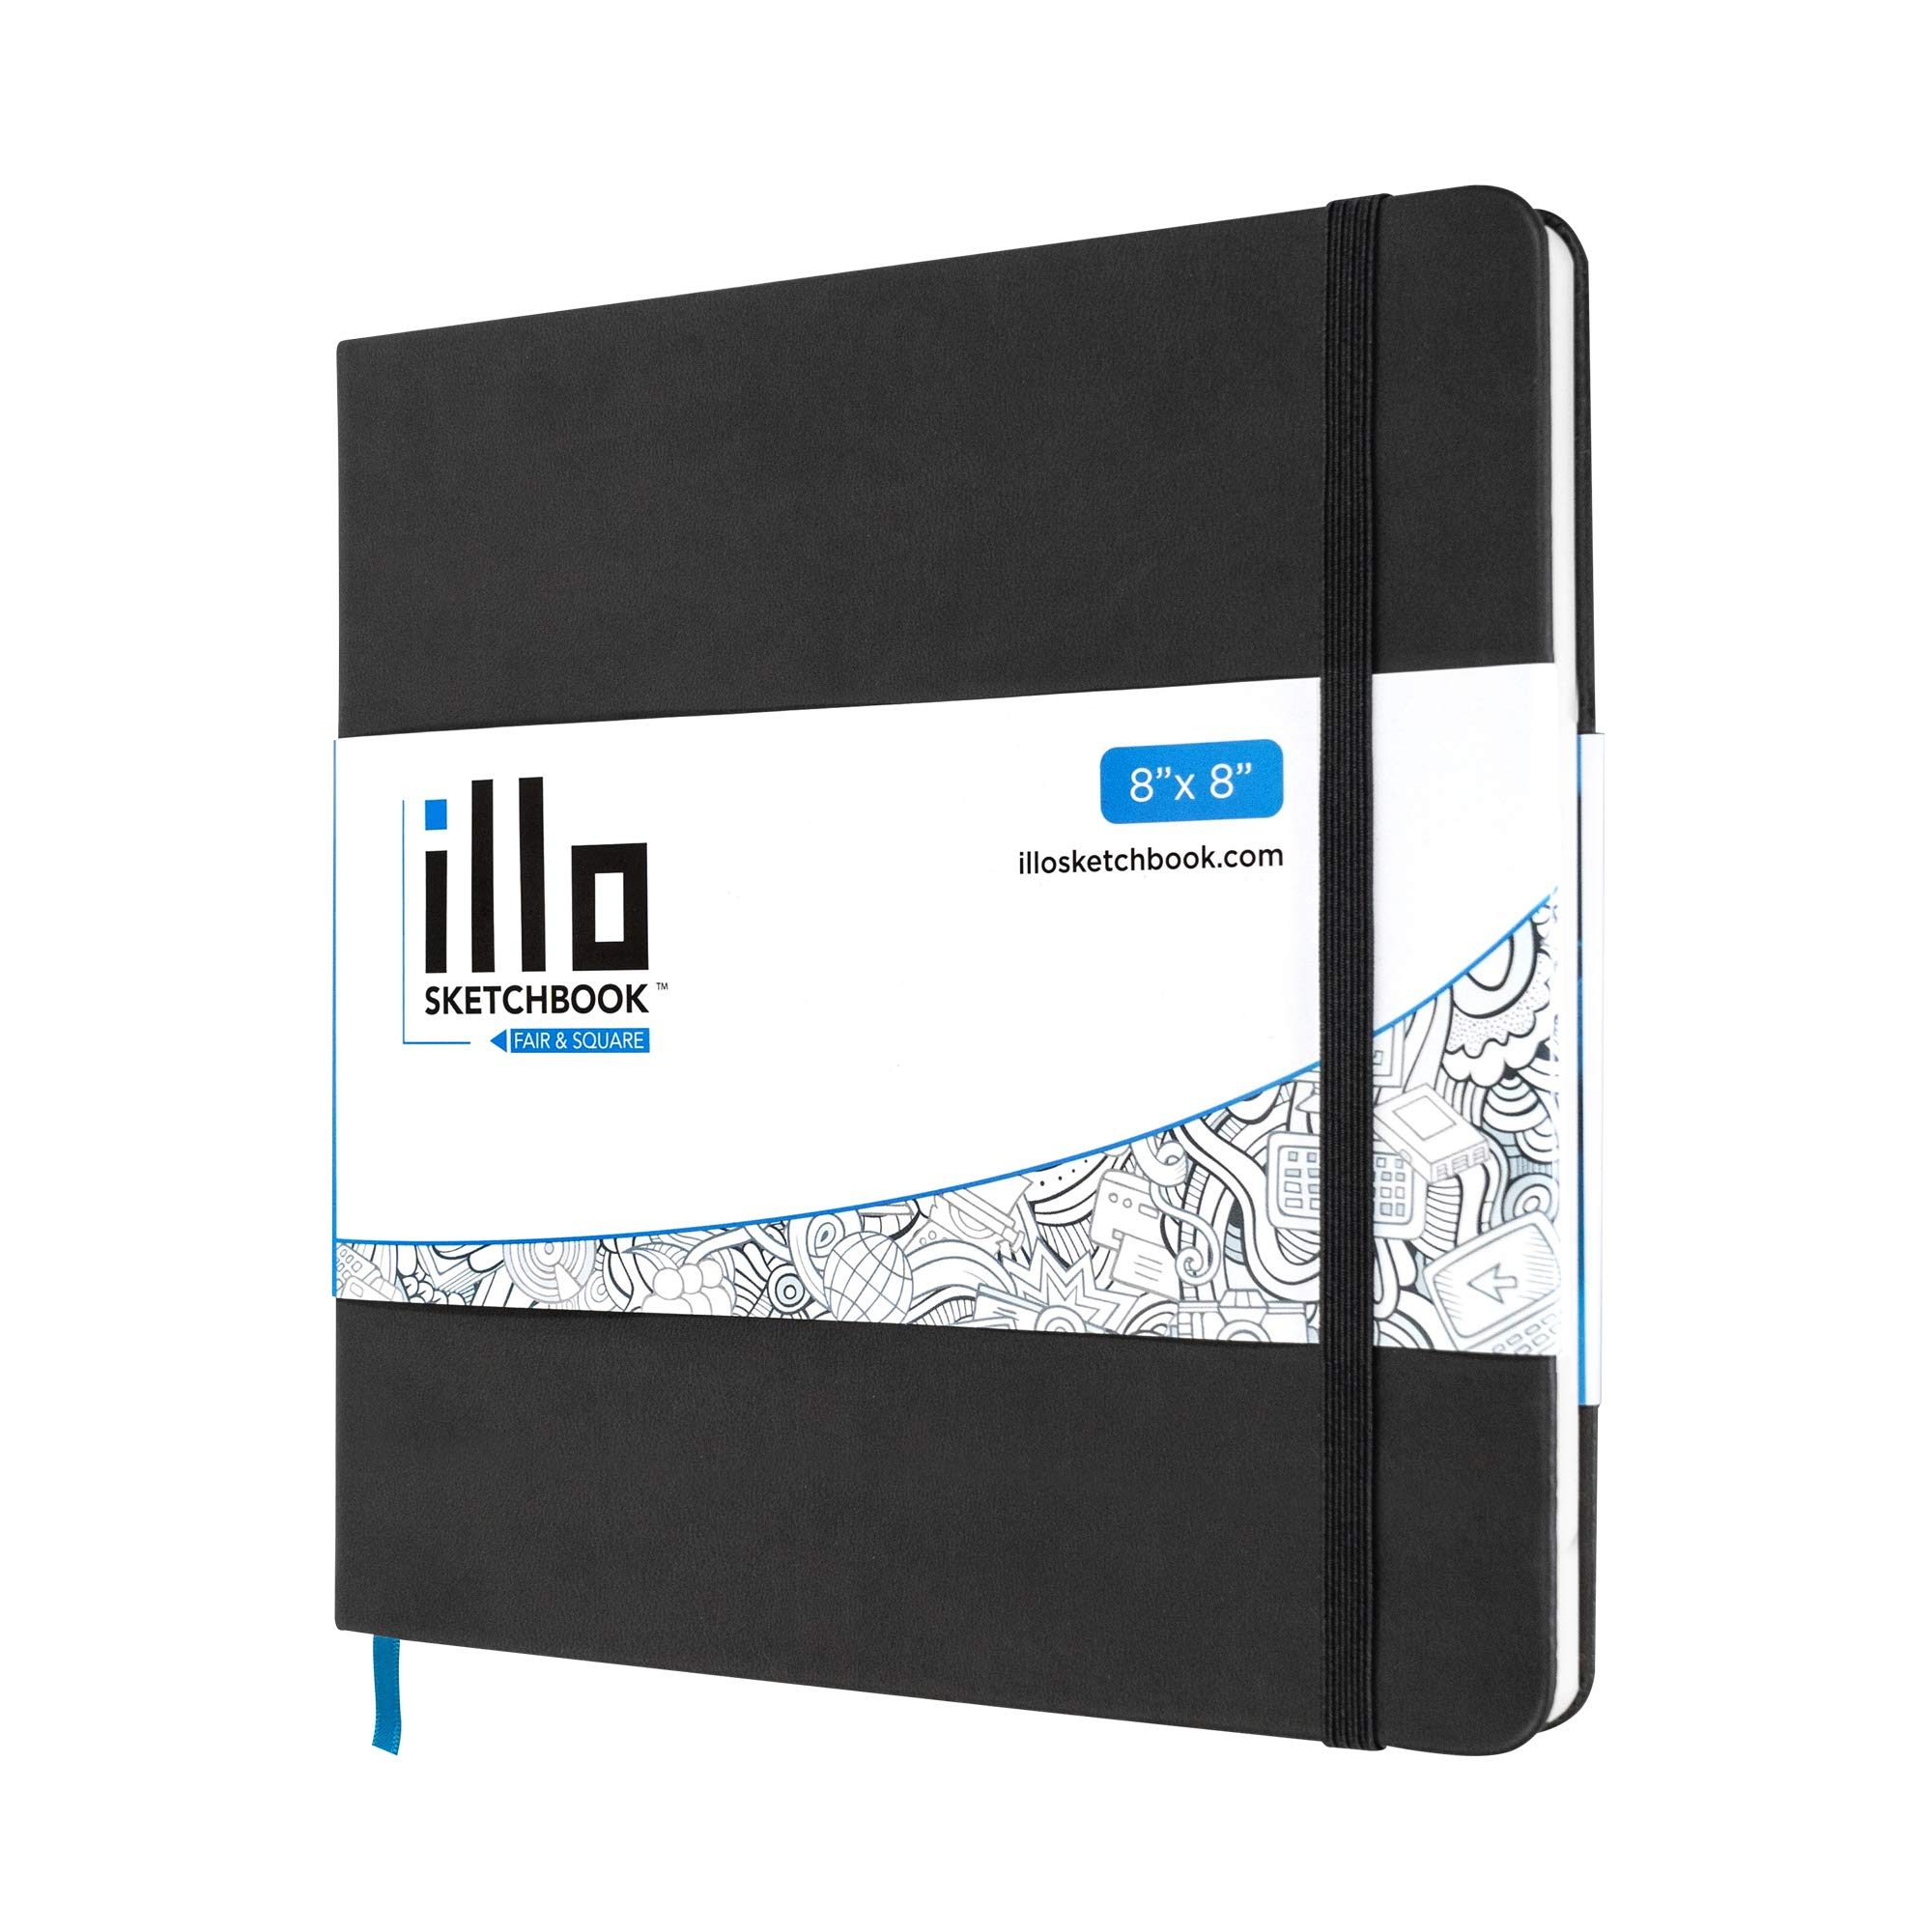 illo Sketchbook, Large, Square, Sketch Book, (8x8), Premium, 122lb Paper, Hardcover Notebook, Lay Flat, Smooth Paper, Thick Paper, Elastic Enclosure and Ribbon Marker by ILLO SKETCHBOOK FAIR & SQUARE